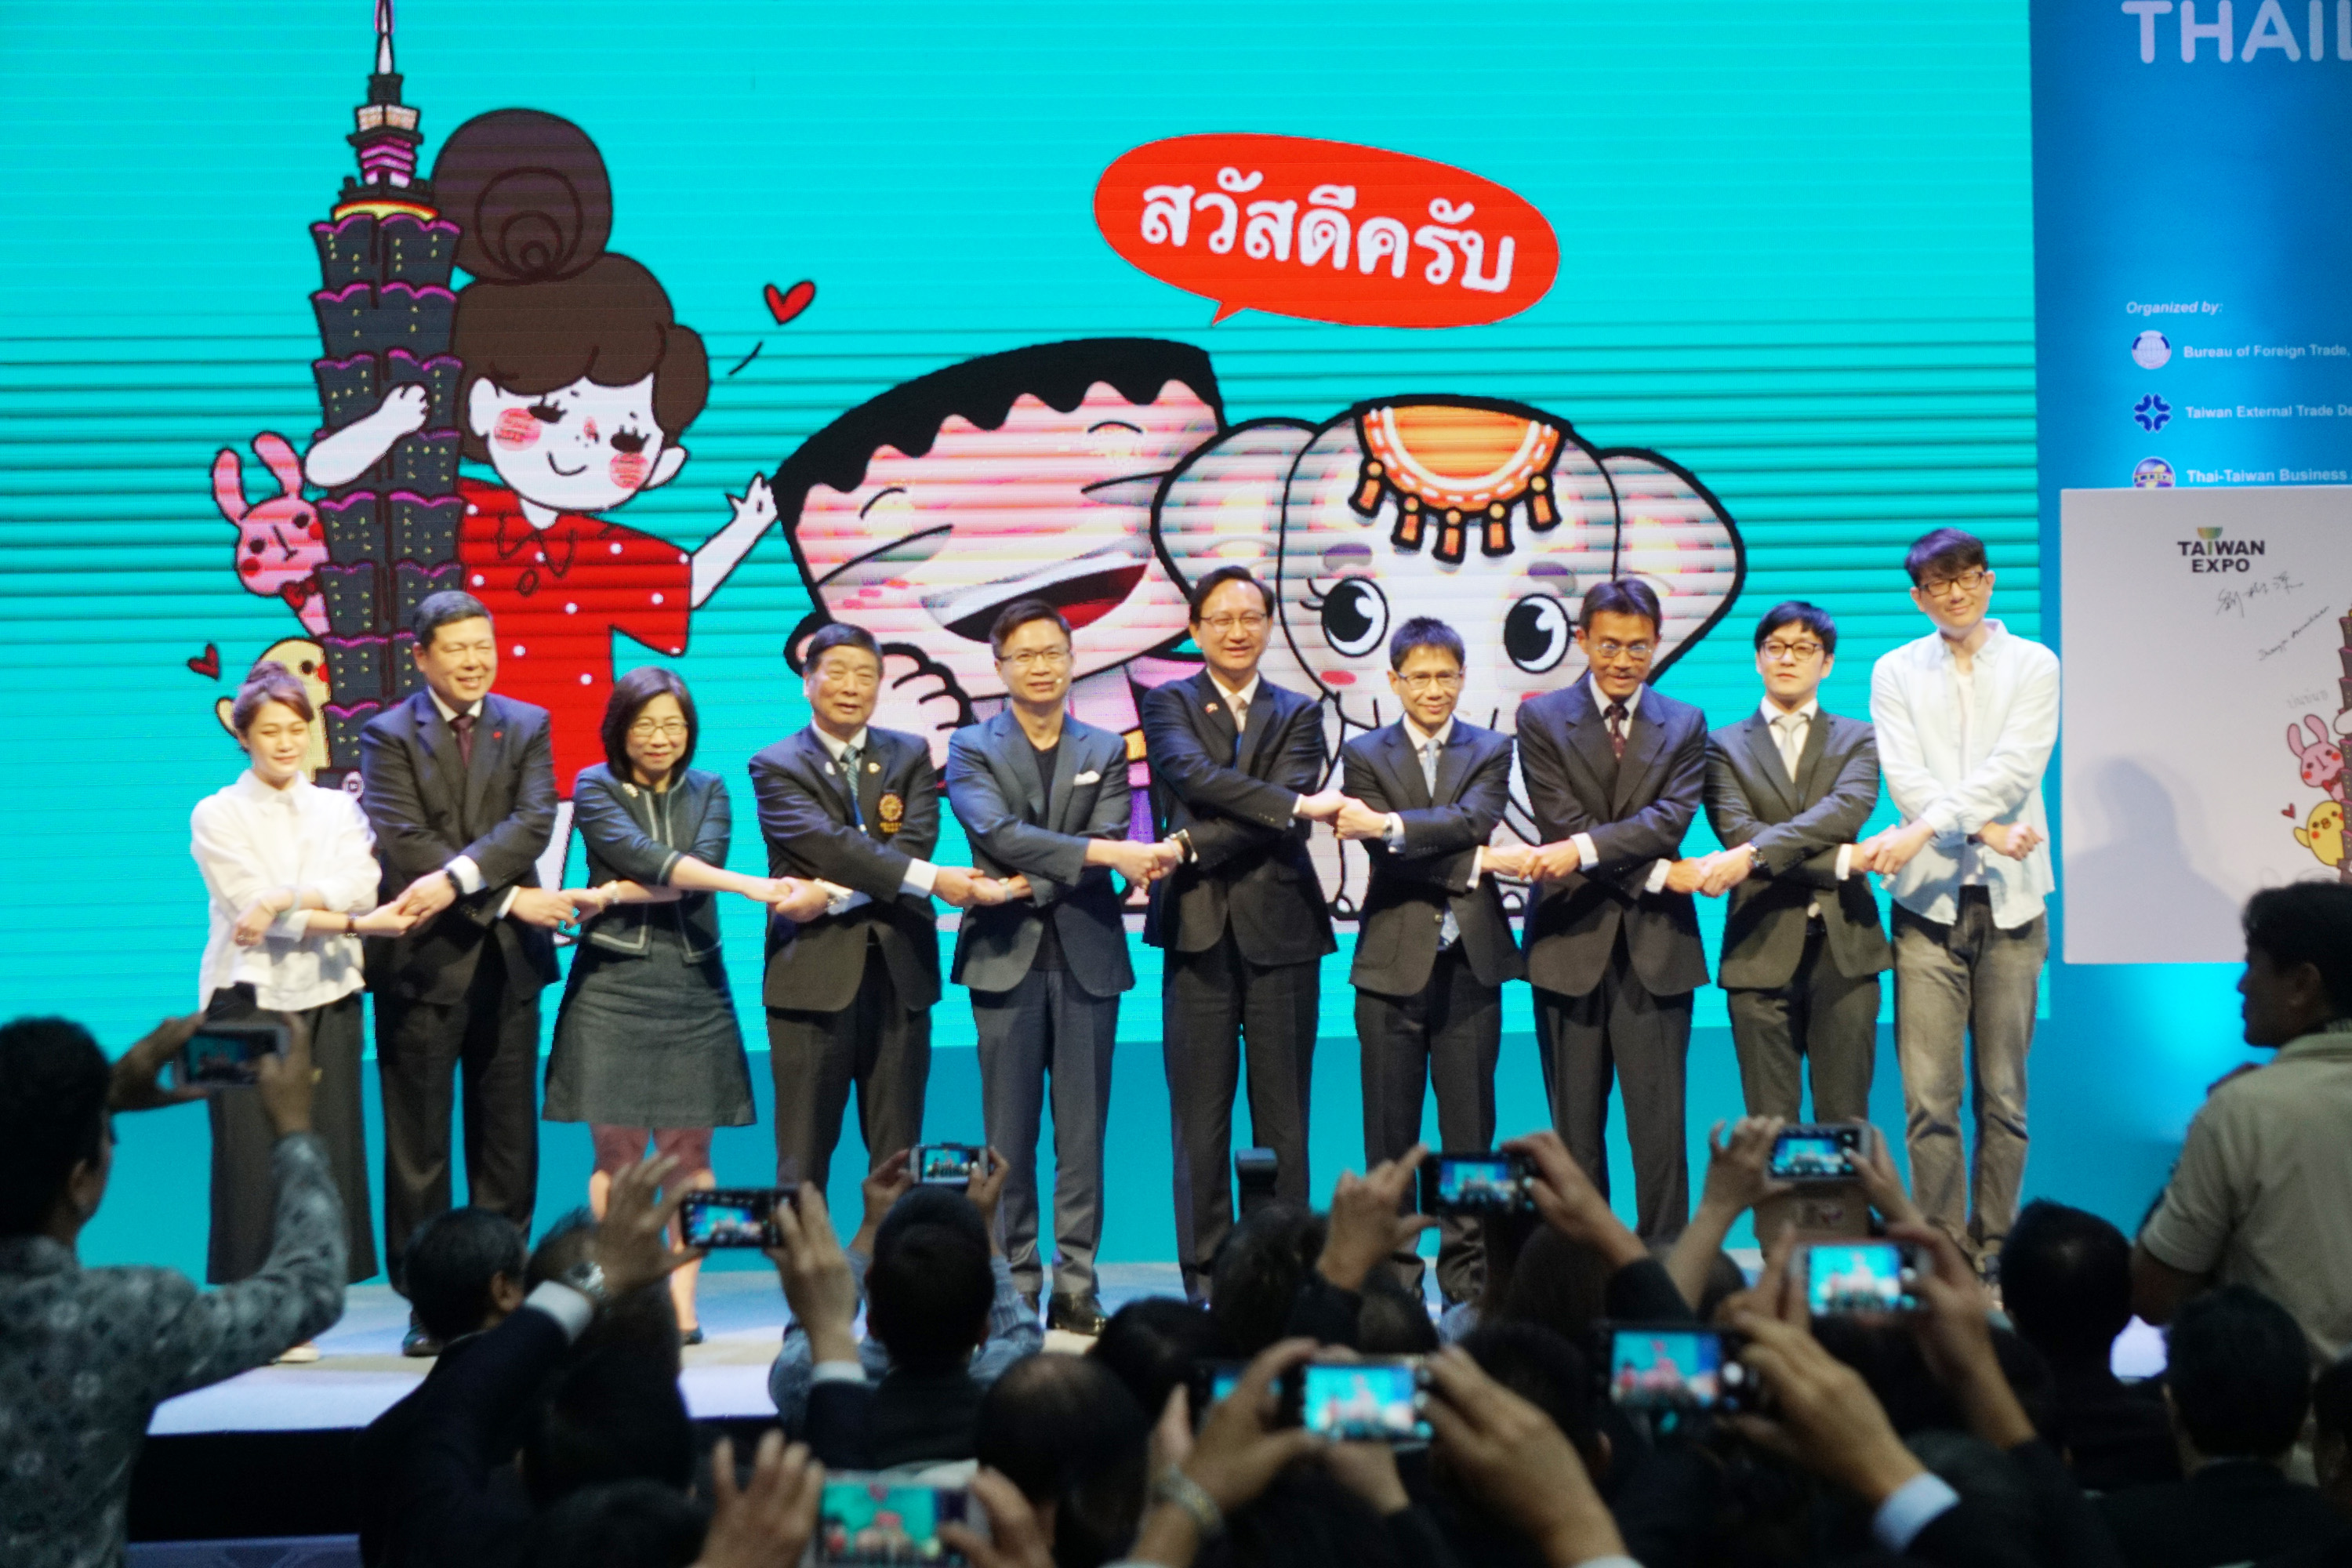 New Southbound Policy。BOFT Deputy Director General Lee Guann-jyh (third right), TAITRA Chairman James C. F. Huang (fifth left) and other participants join hands at the opening of Taiwan Expo 2018 Aug. 30 in Bangkok. (CNA)